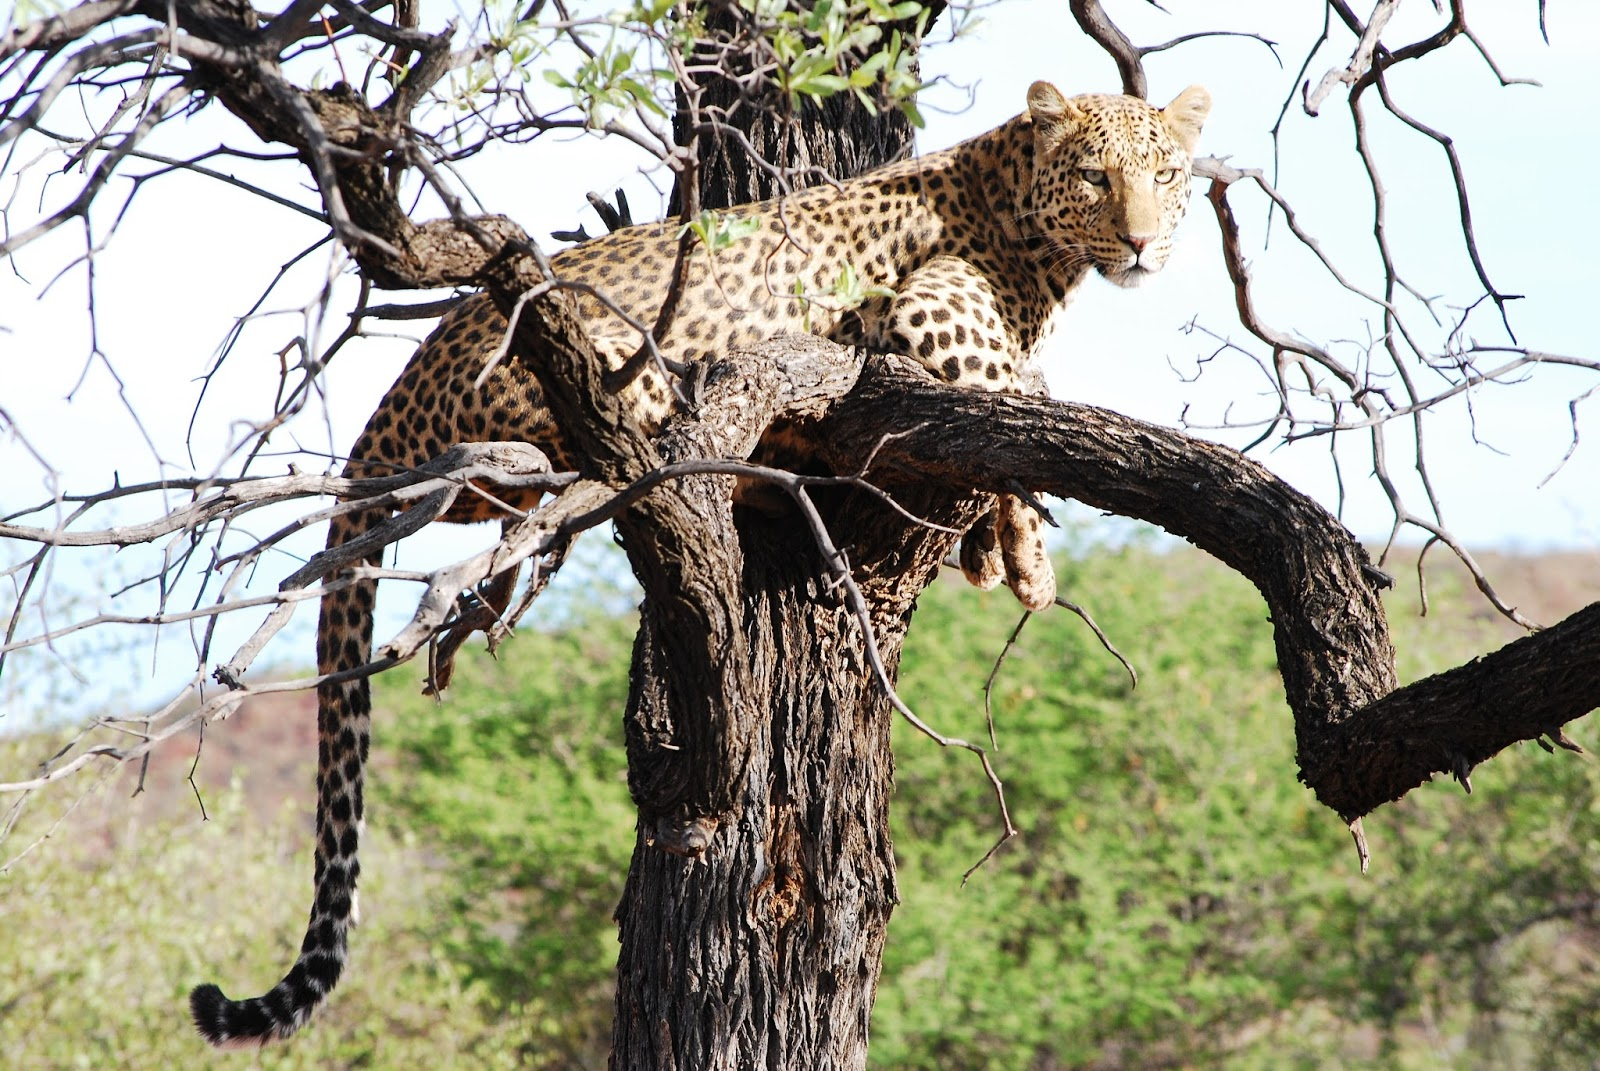 A picture of a leopard on a tree.